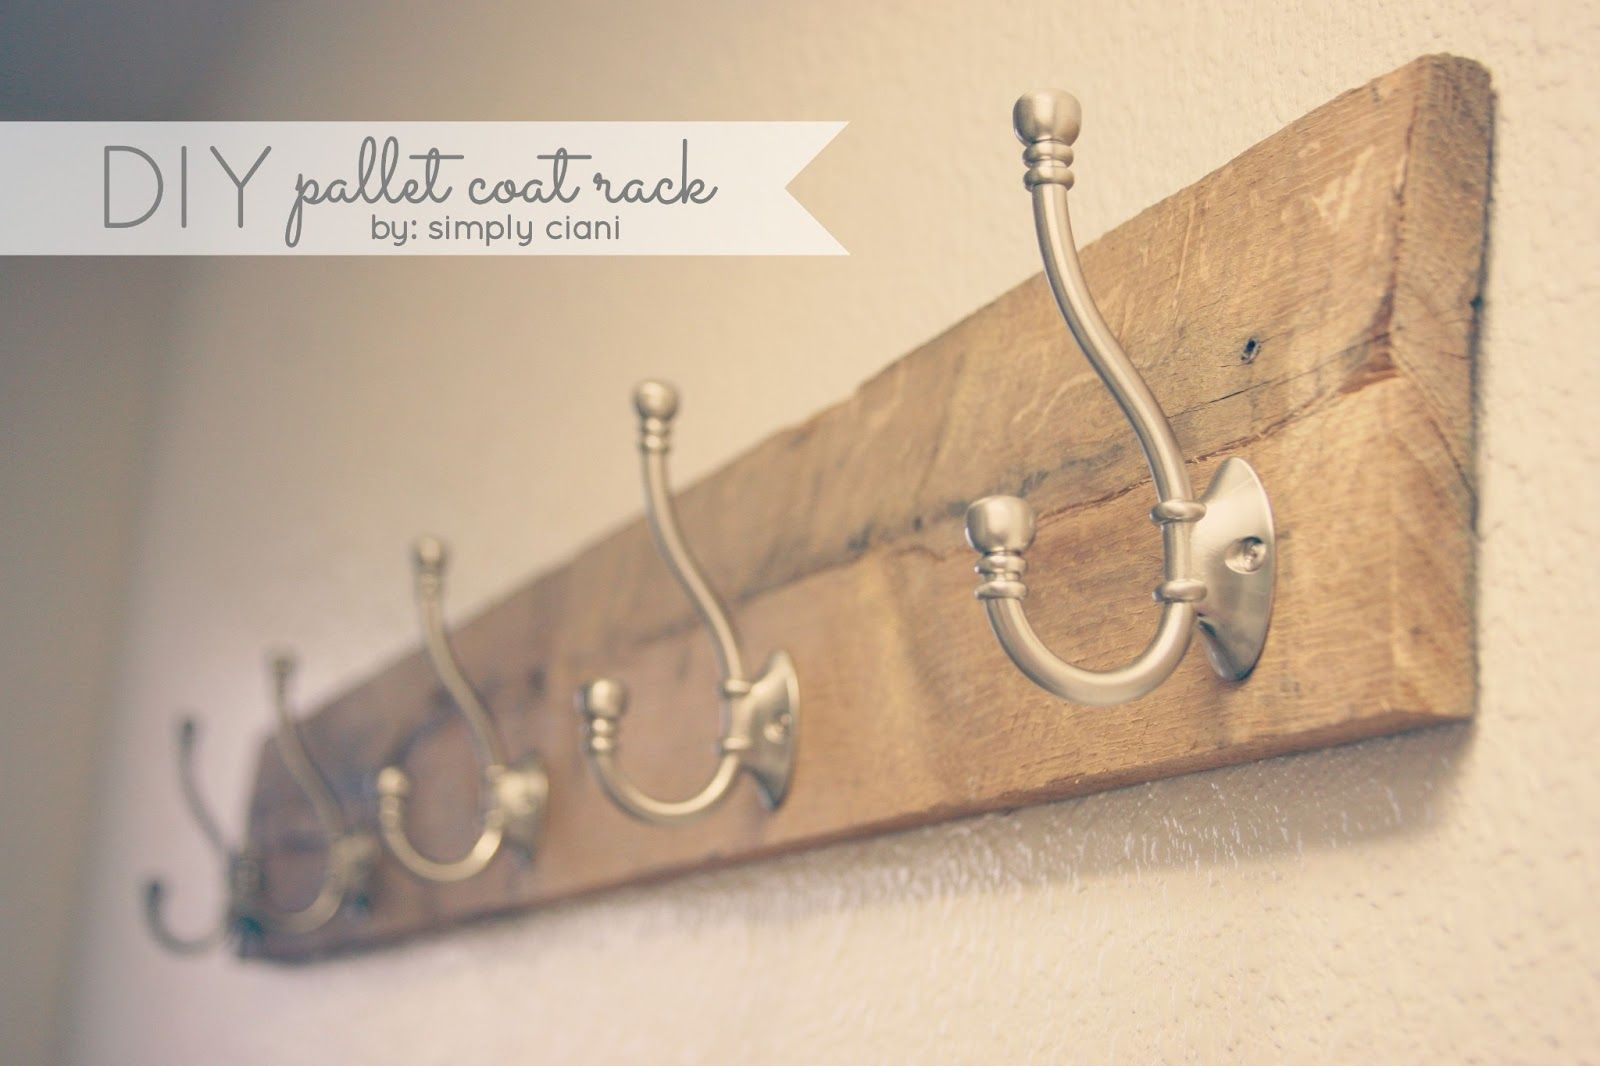 Coat Hooks Lowes Captivating Diy Pallet Coat Rack  Made From Pallet Wood And $3 Hooks From Lowes Design Inspiration